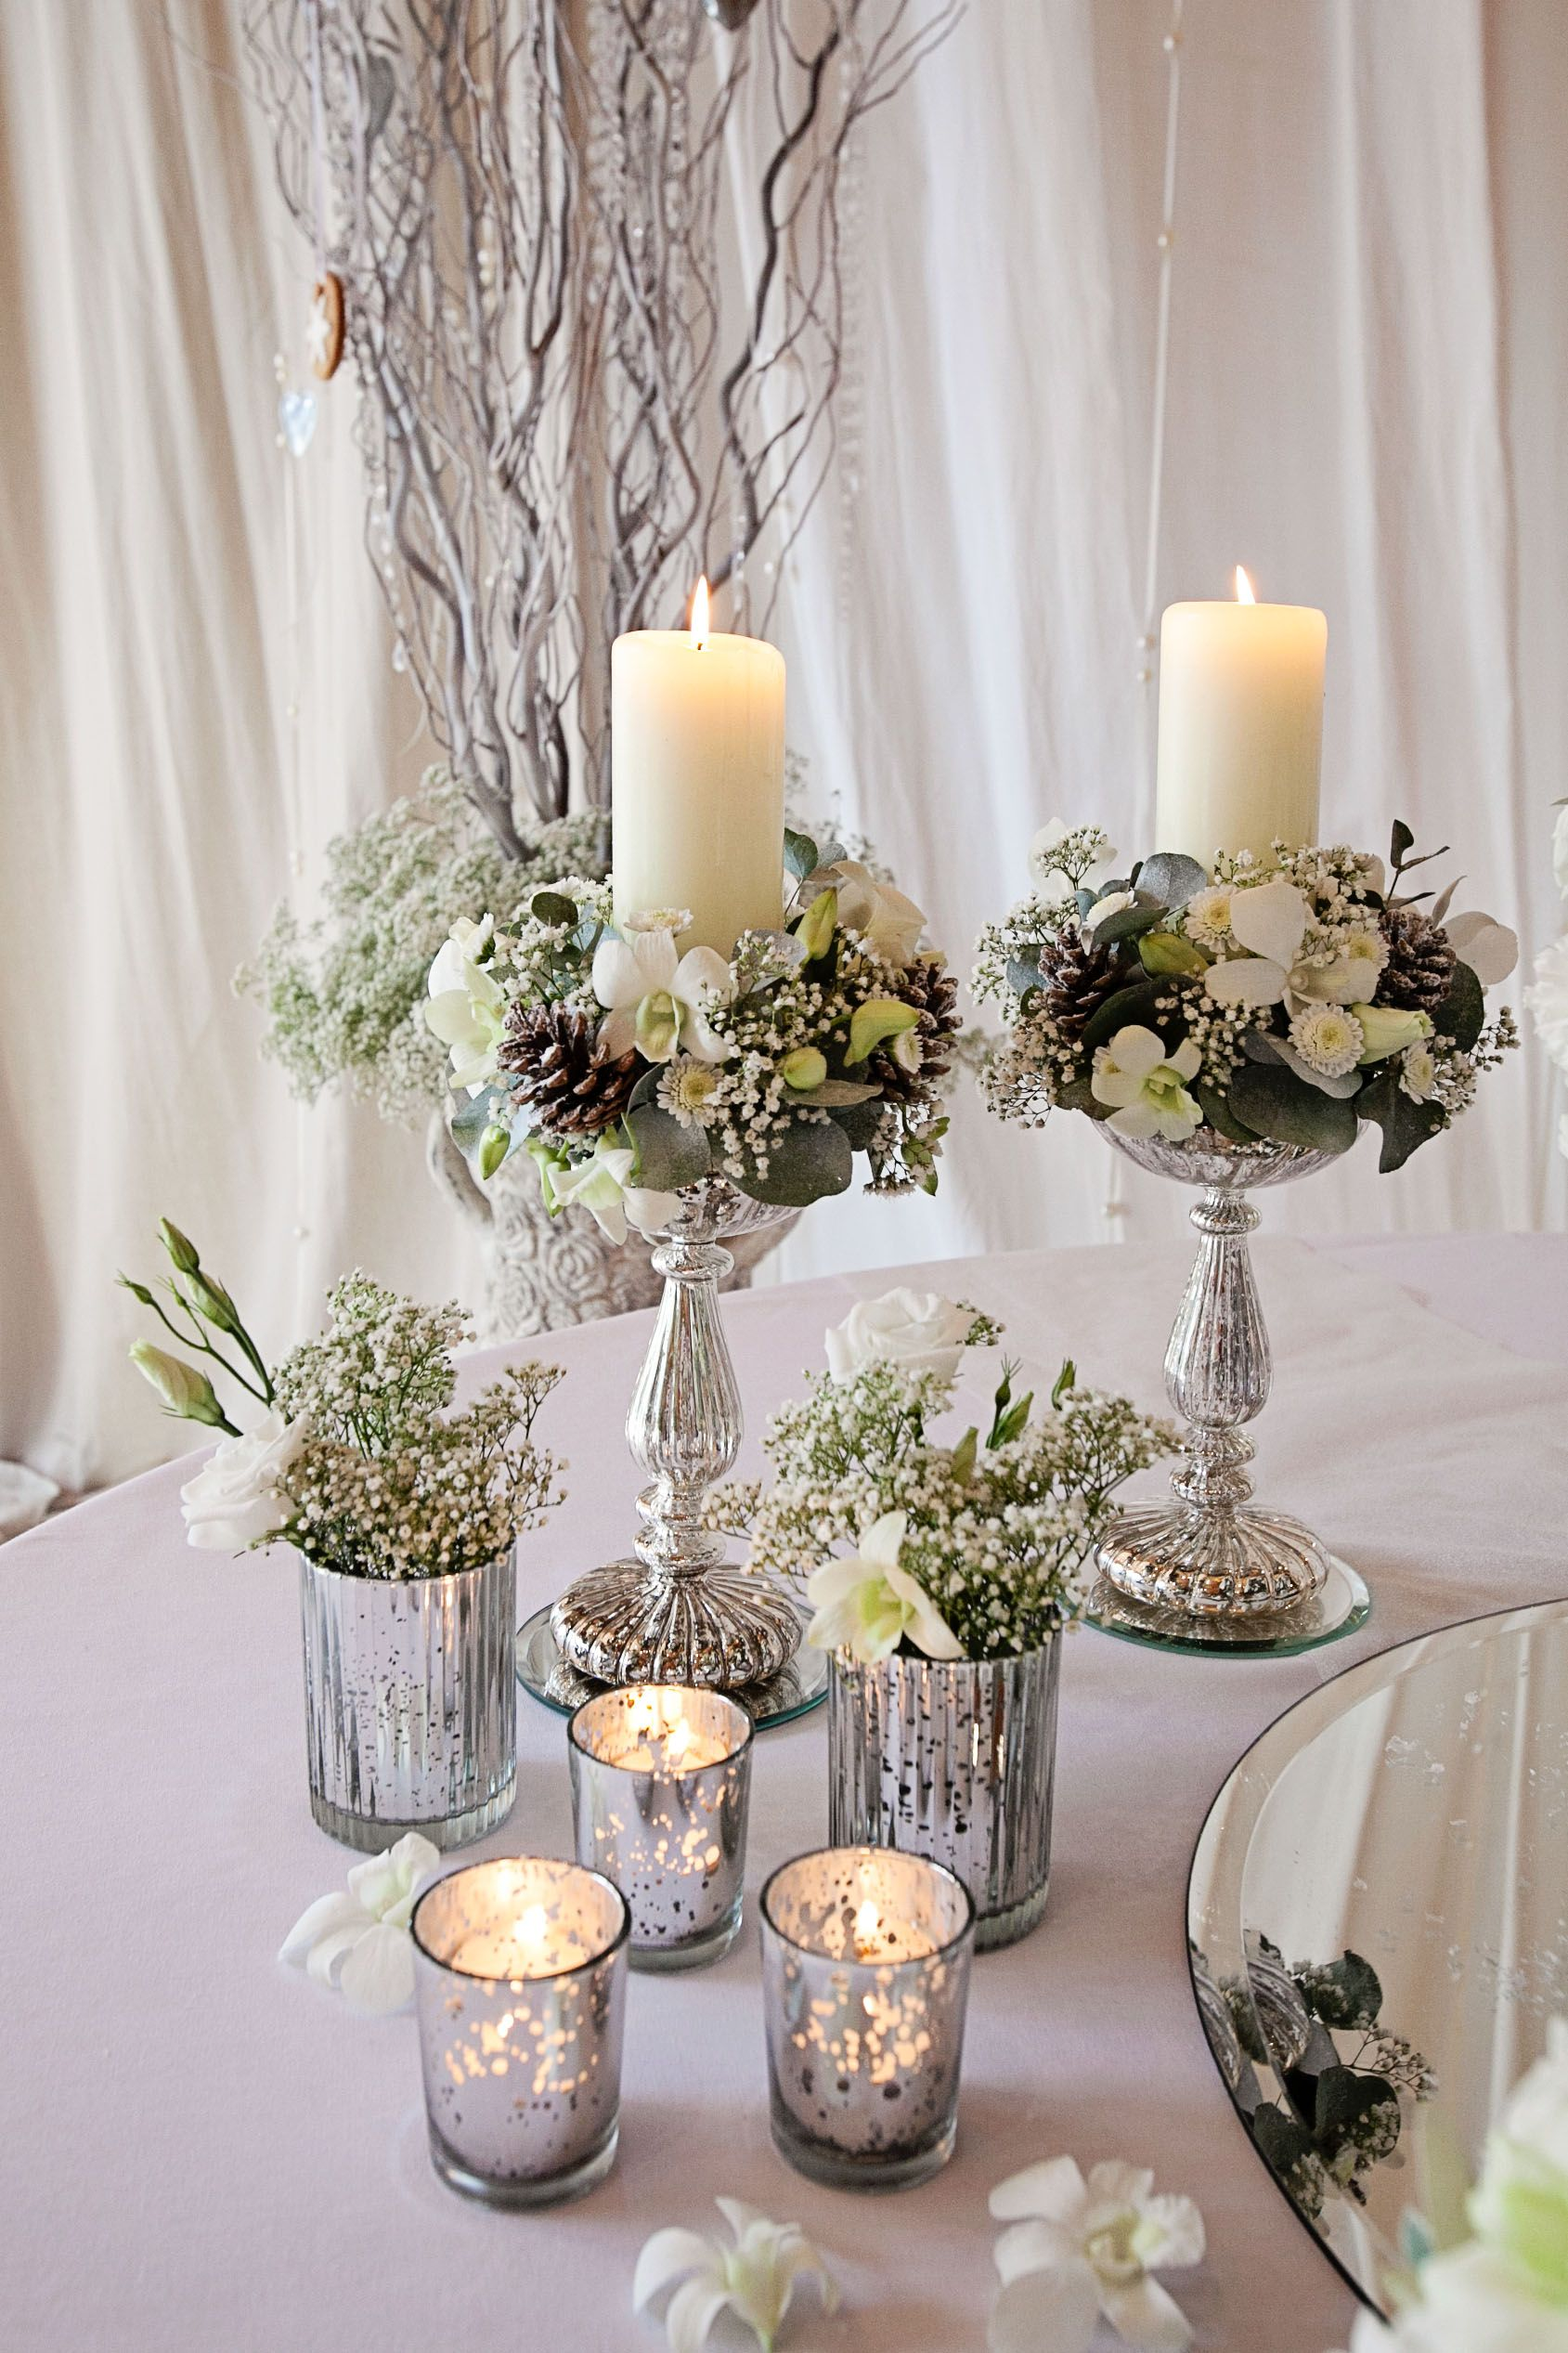 Tiara flower arrangements candle stand arrangements and for Small flower decorations for tables